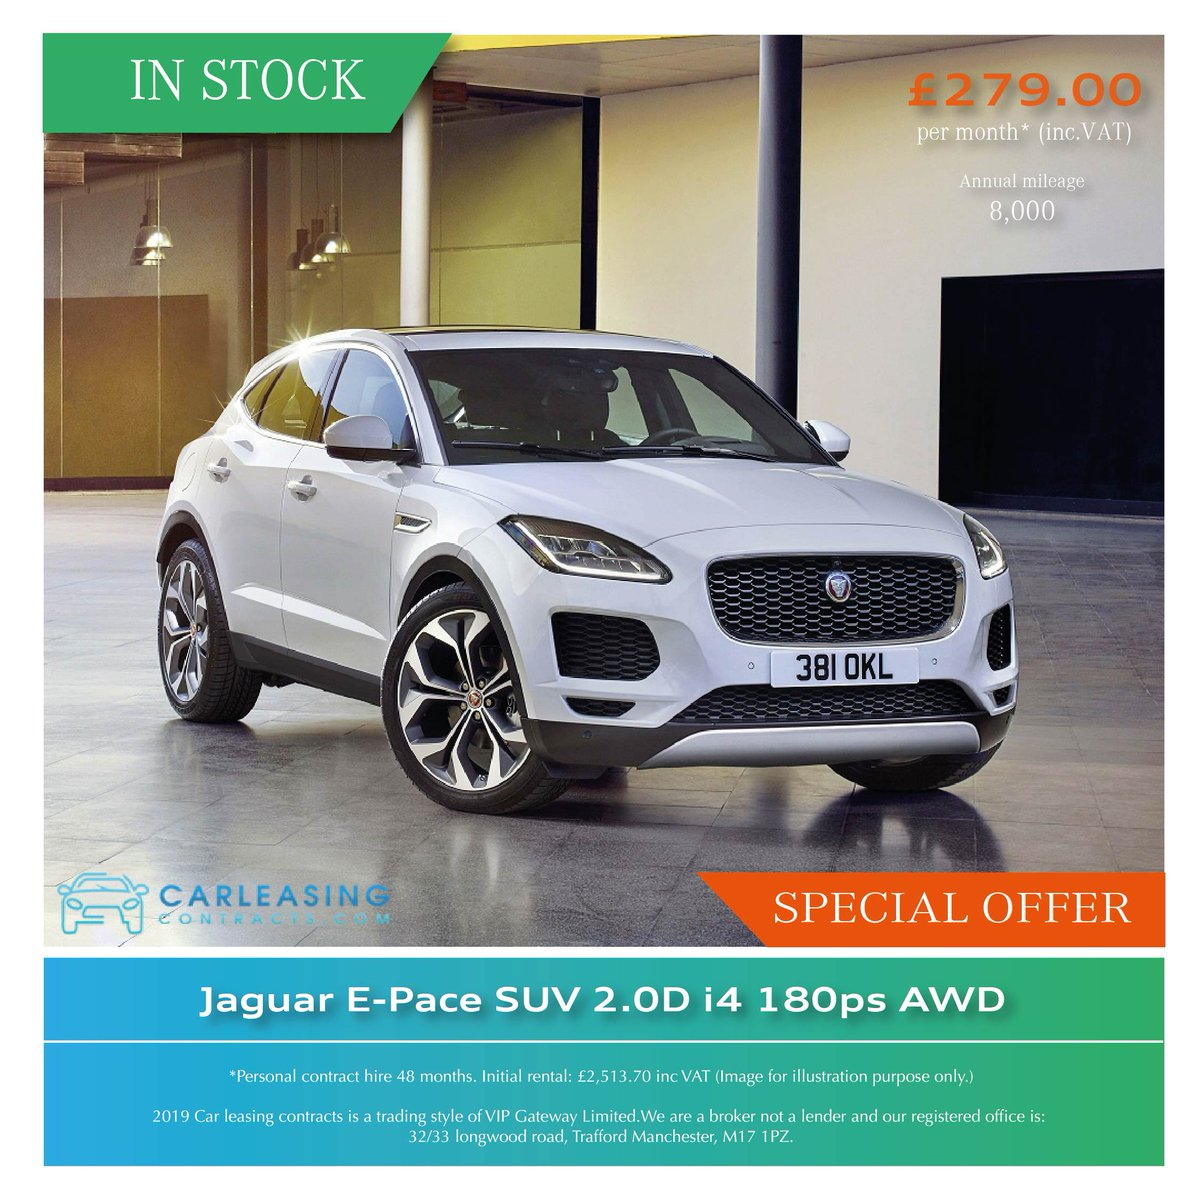 Just on to this amazing special offer before its too late, only a few of these are available in our stock. This Jaguar E-Pace is a truly one of the greatest SUVs to purchase. Get in touch for a quote!  #Jaguar #EPACE #AWD #jaguarsport #Luxurycars #Performance #SUV #InstaCarpic.twitter.com/YI02ejIcD7